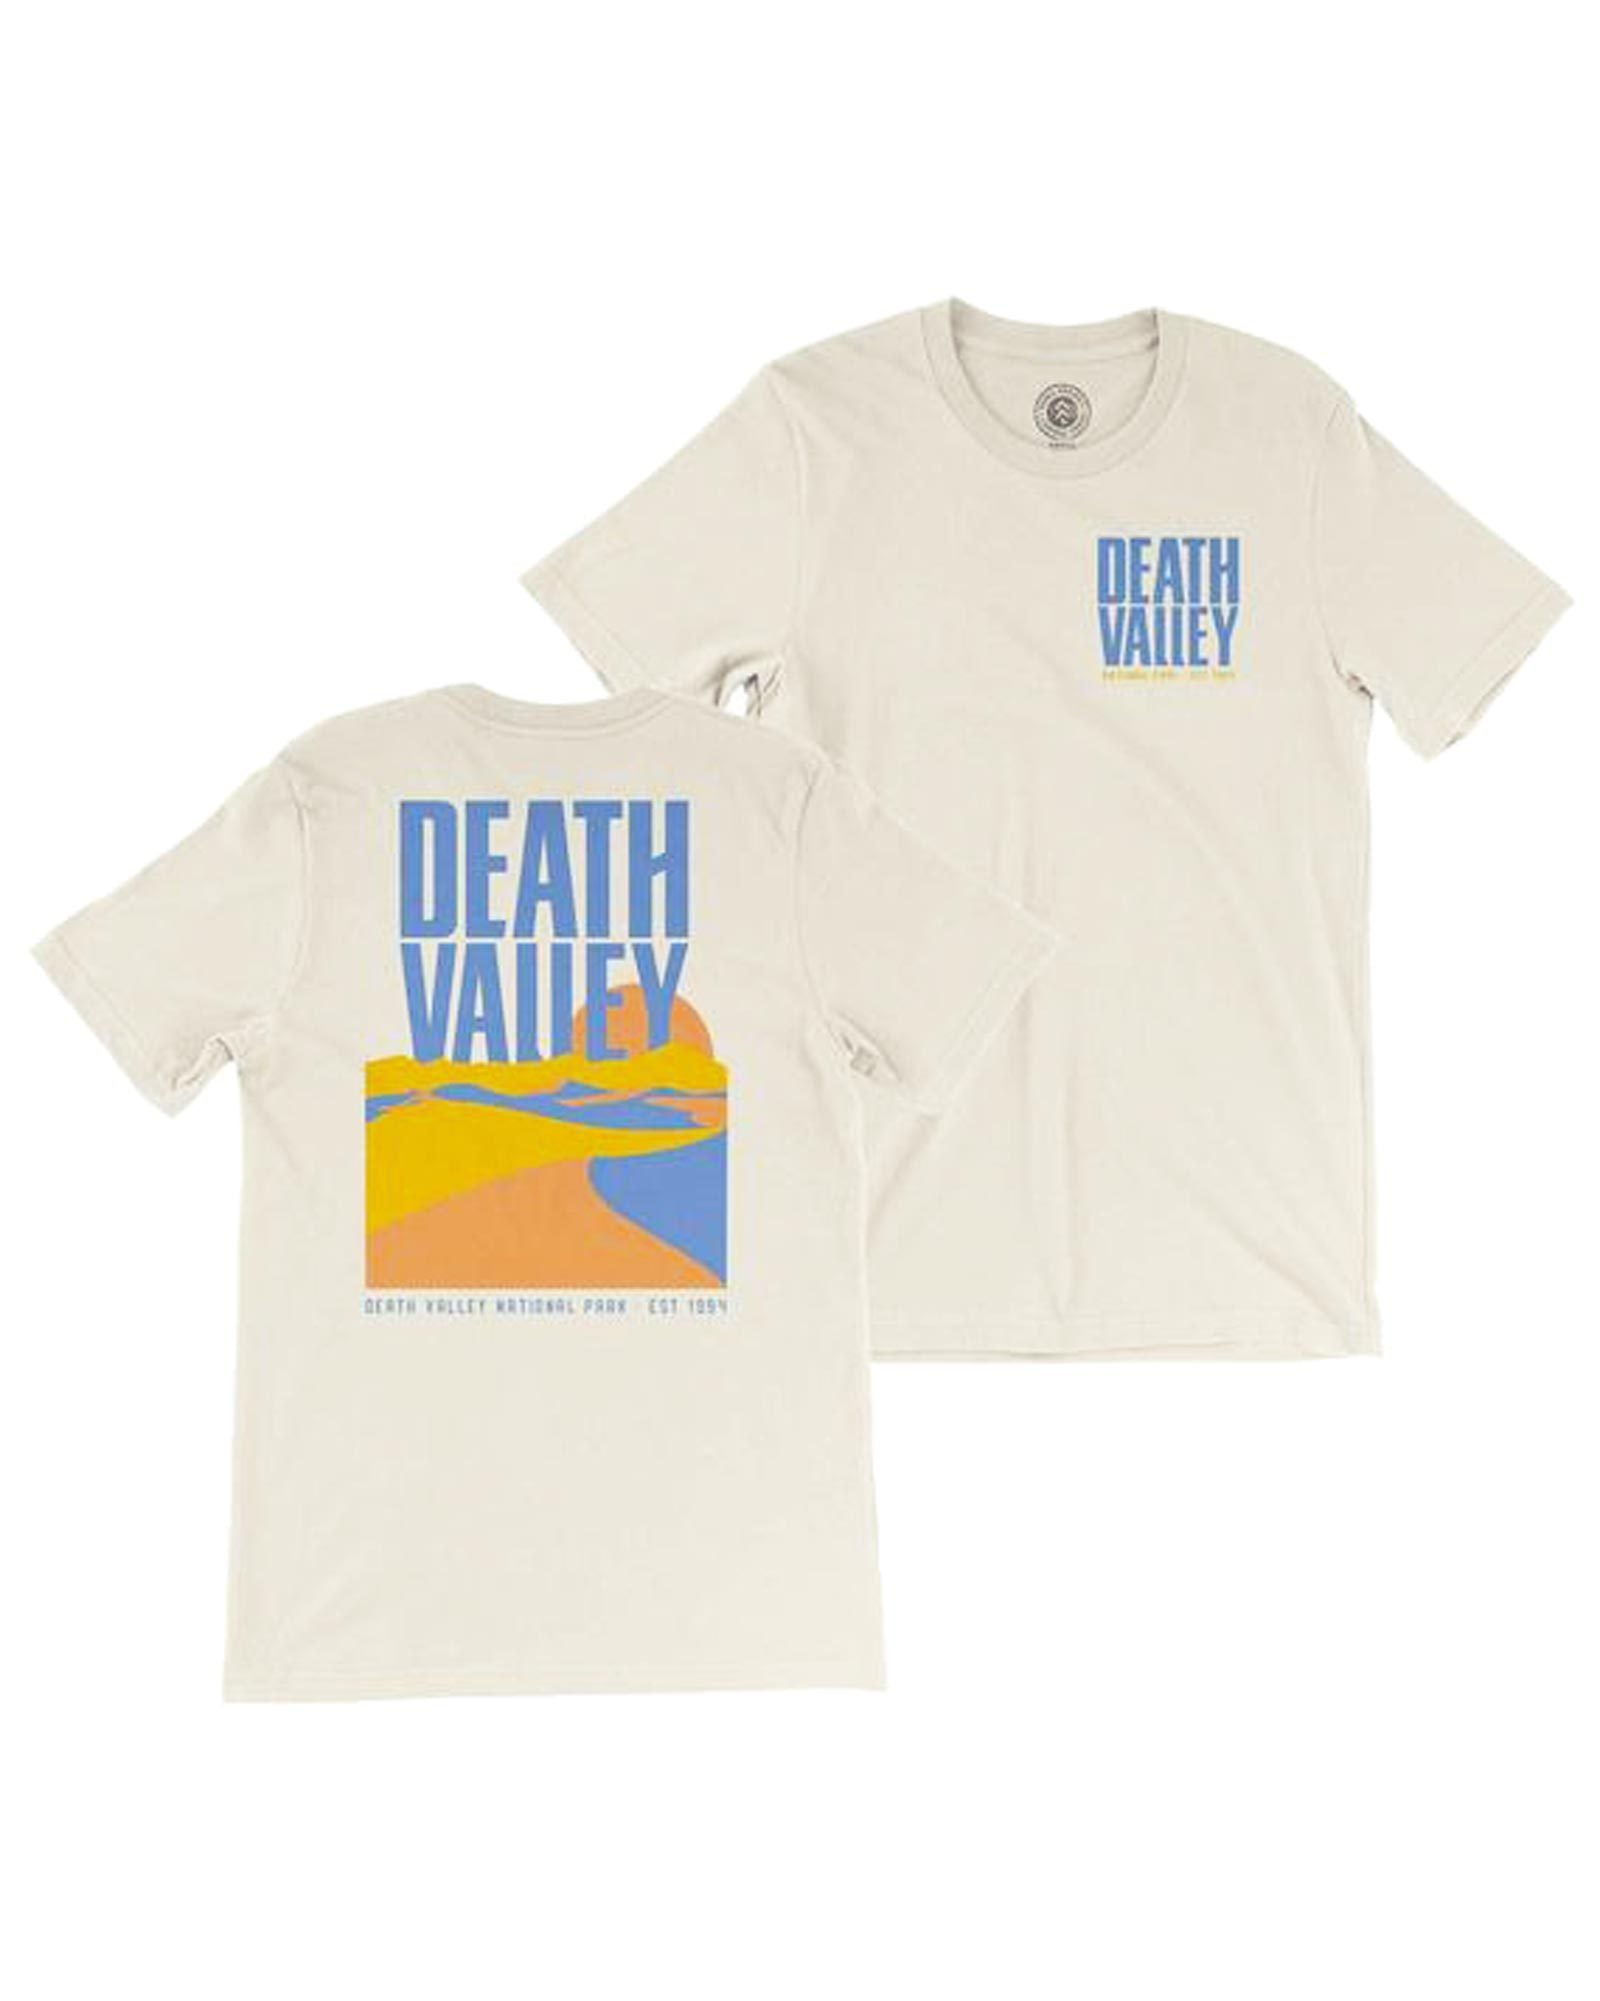 Death Valley Dunes Tee | Parks Project | National Parks Apparel